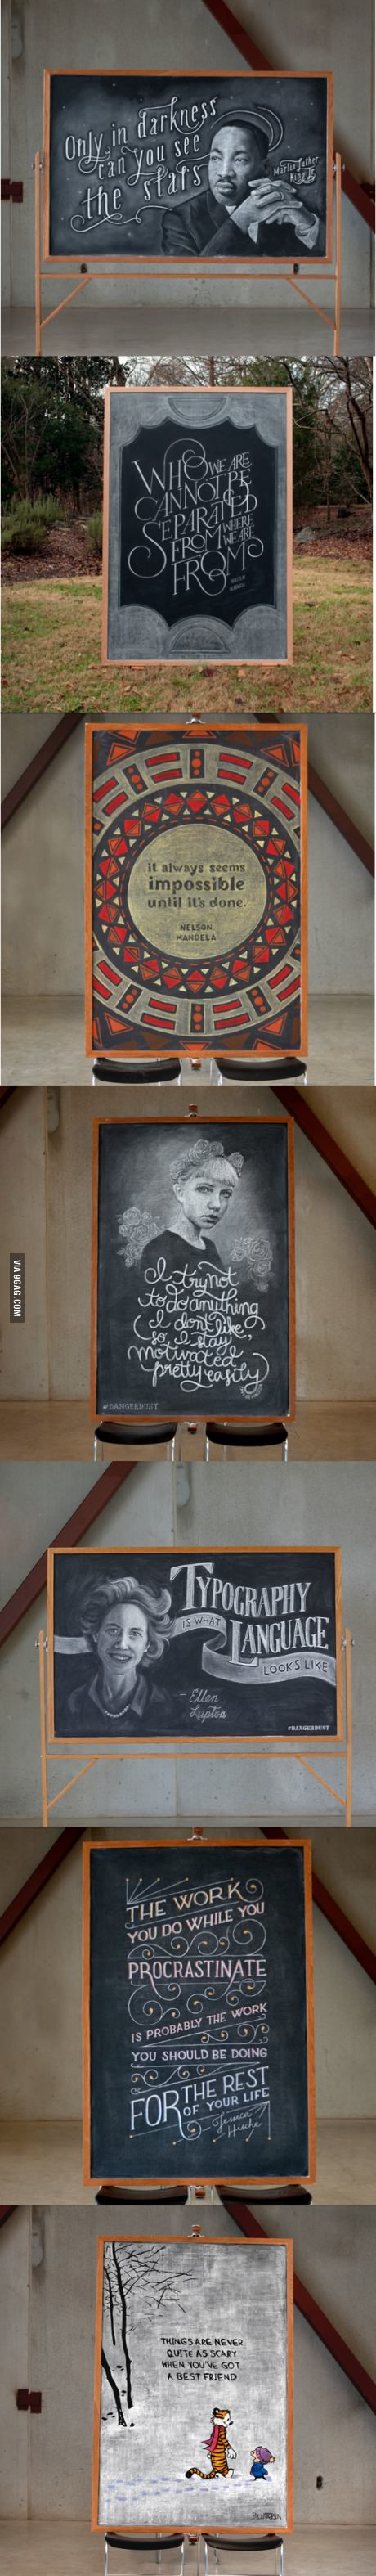 Two students have anonymously taken over a chalkboard on campus, they call themselves Danger Dust